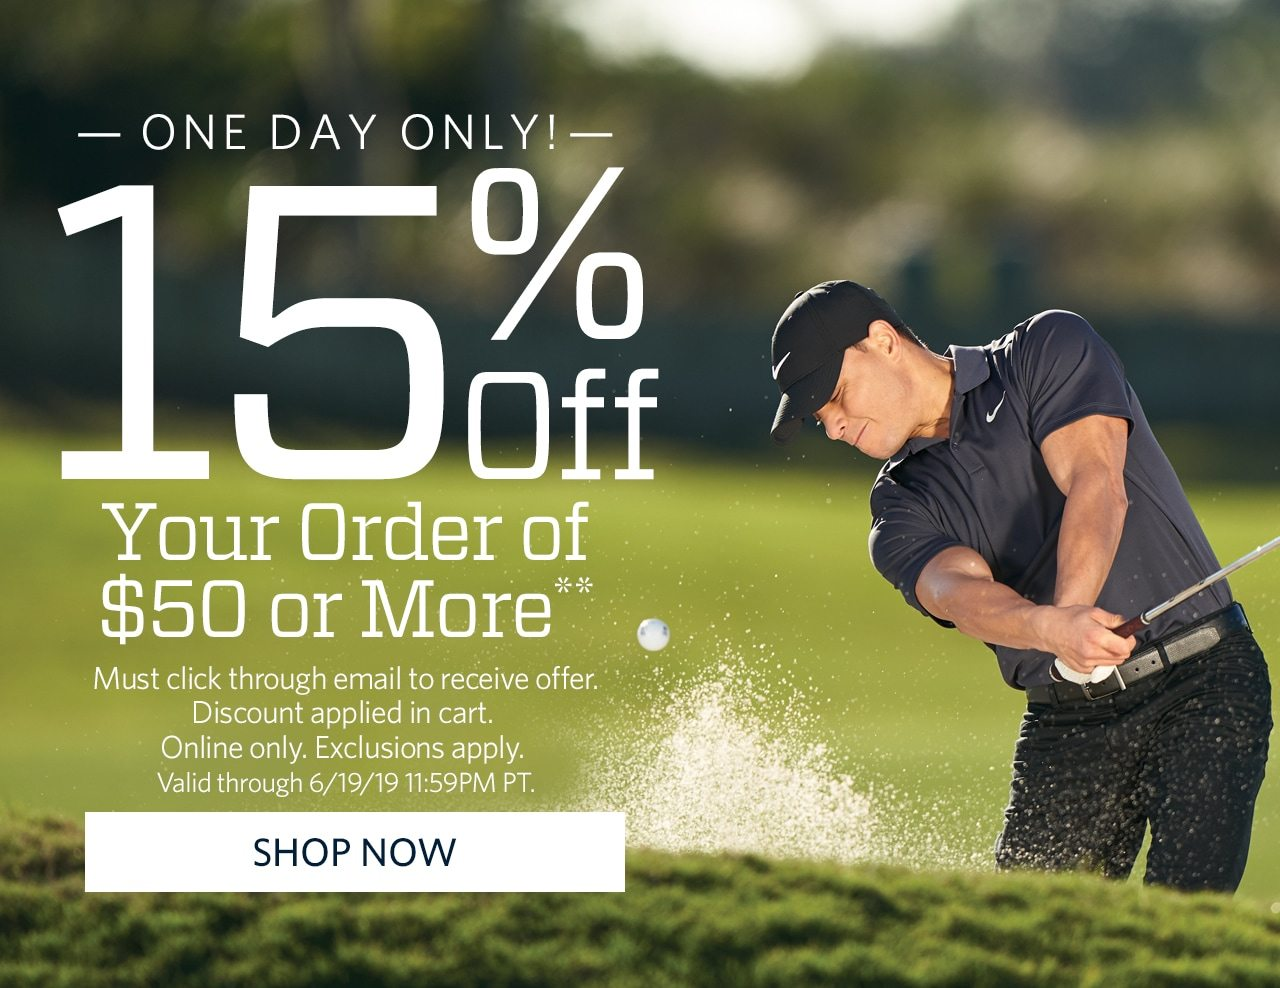 ONE DAY ONLY. TAKE 15% off your order of $50 or more. Must click through to recieve offer. Shop Now.